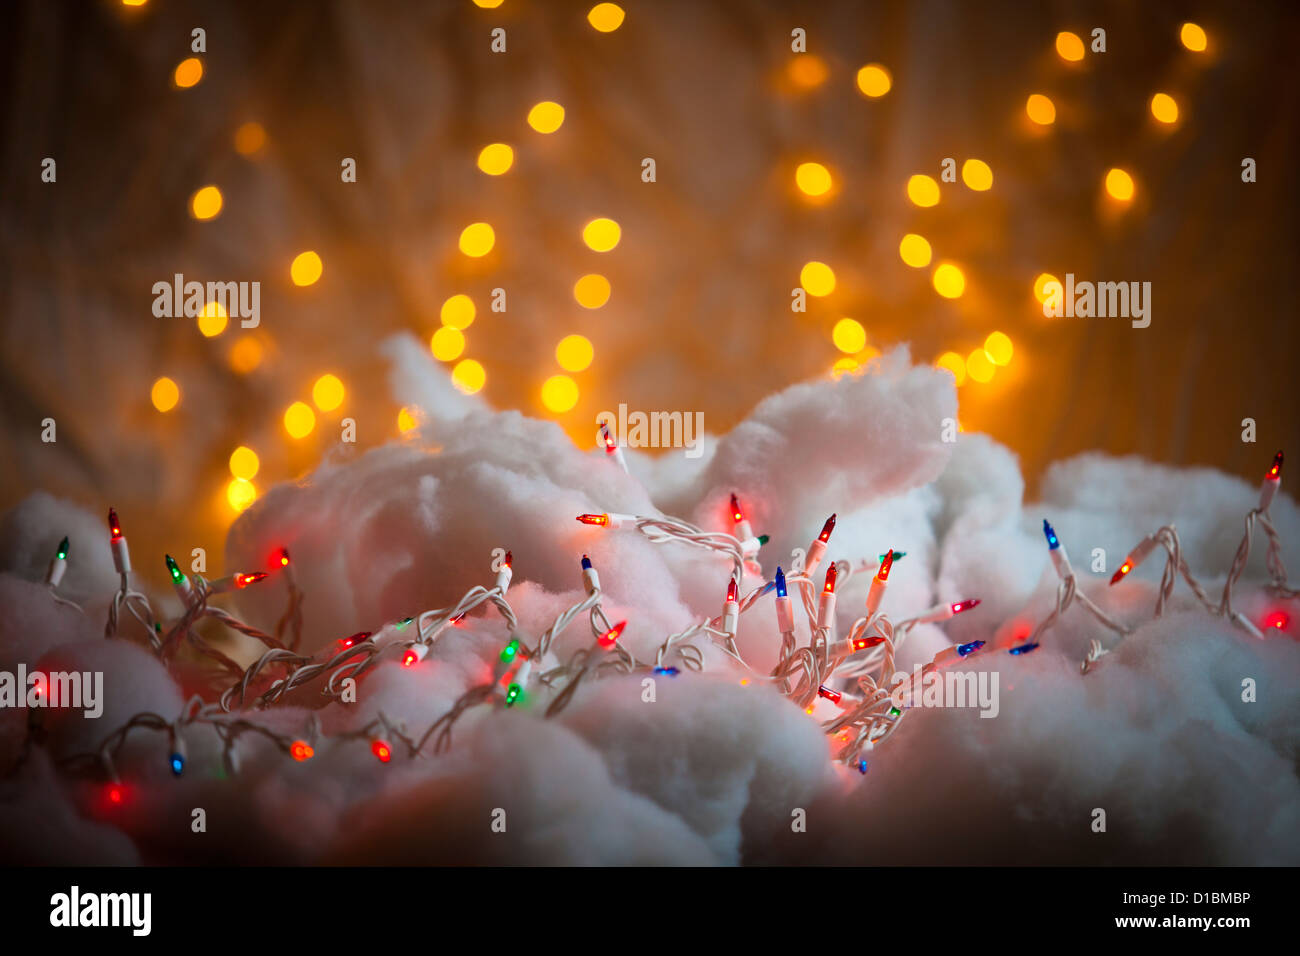 A colorful strand of Christmas lights on snowy fabric - Stock Image